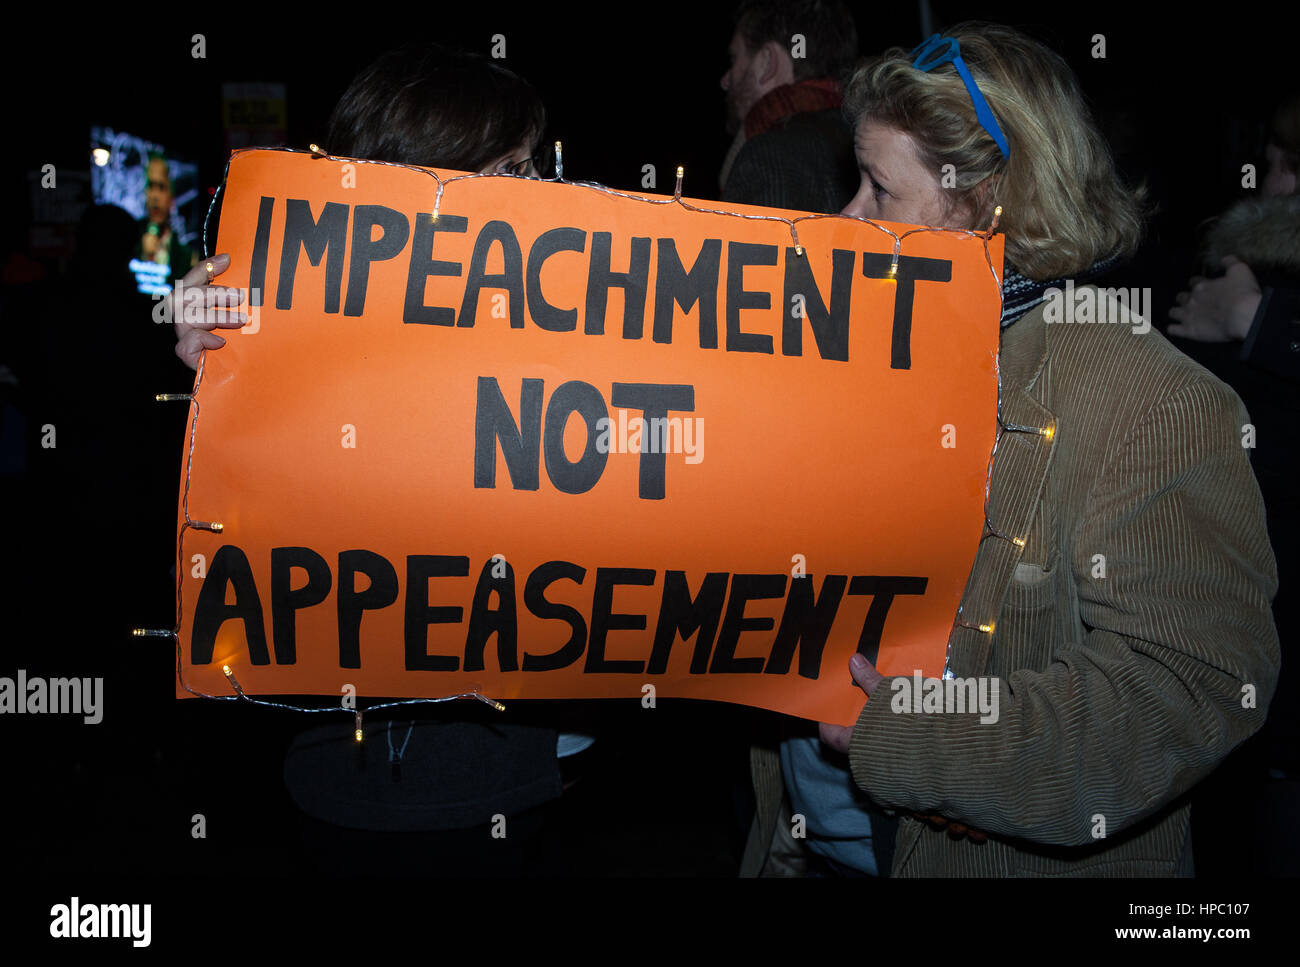 London, UK. 20th Feb, 2017. Protesters with a placard at an anti Trump demonstration at Parliament Square. Protesters - Stock Image